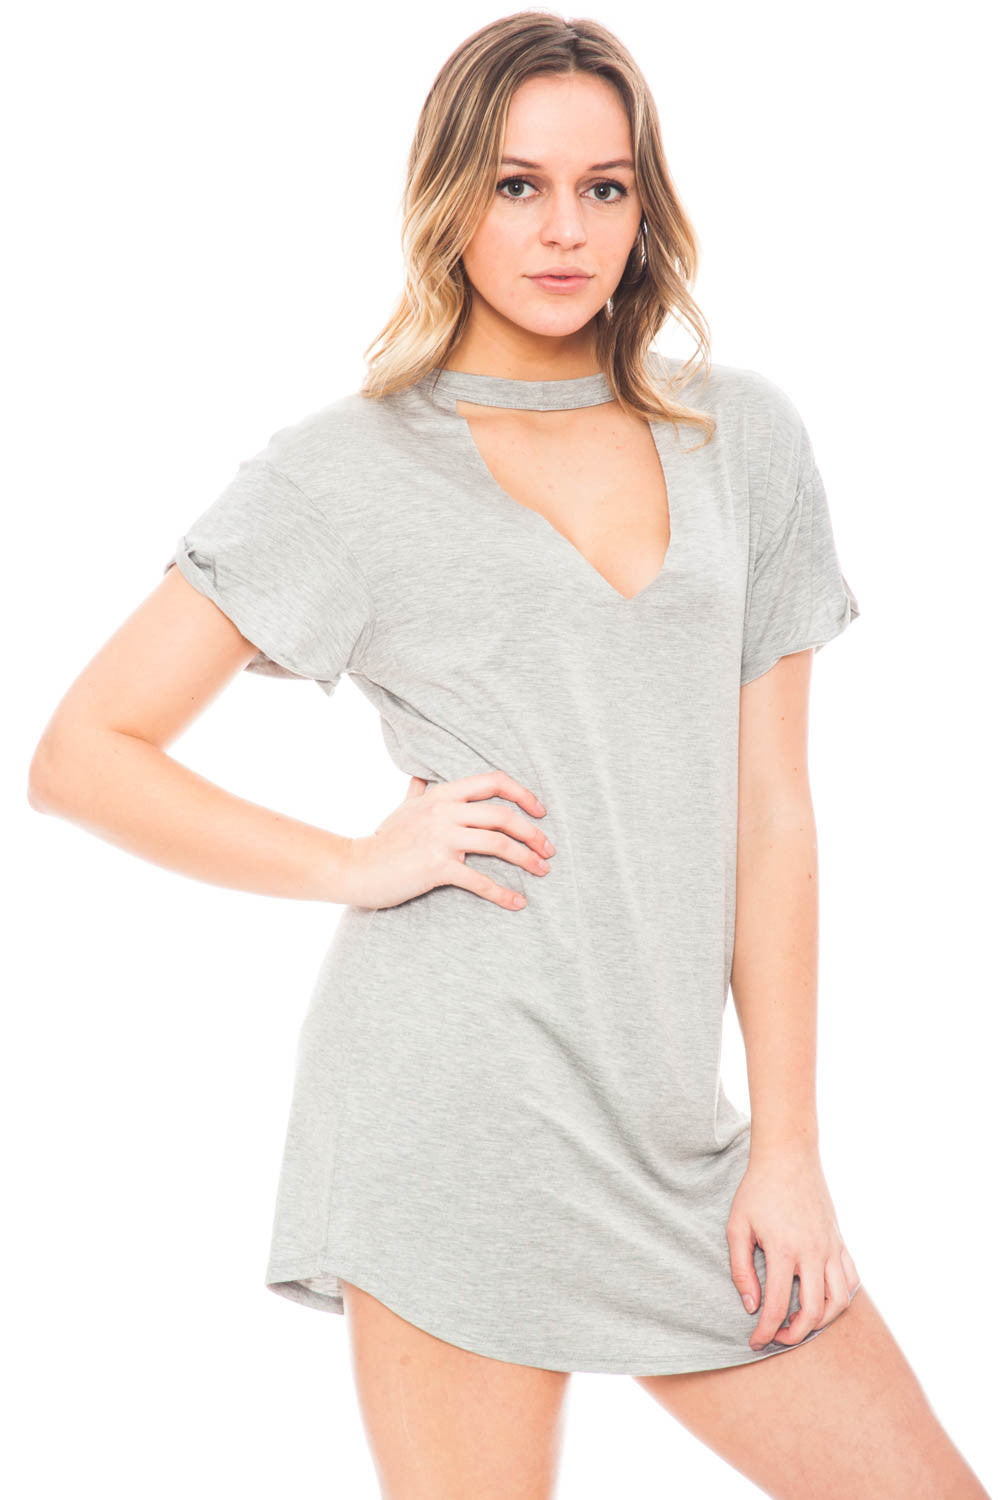 Dress - Short Sleeve Choker T-Shirt Dress